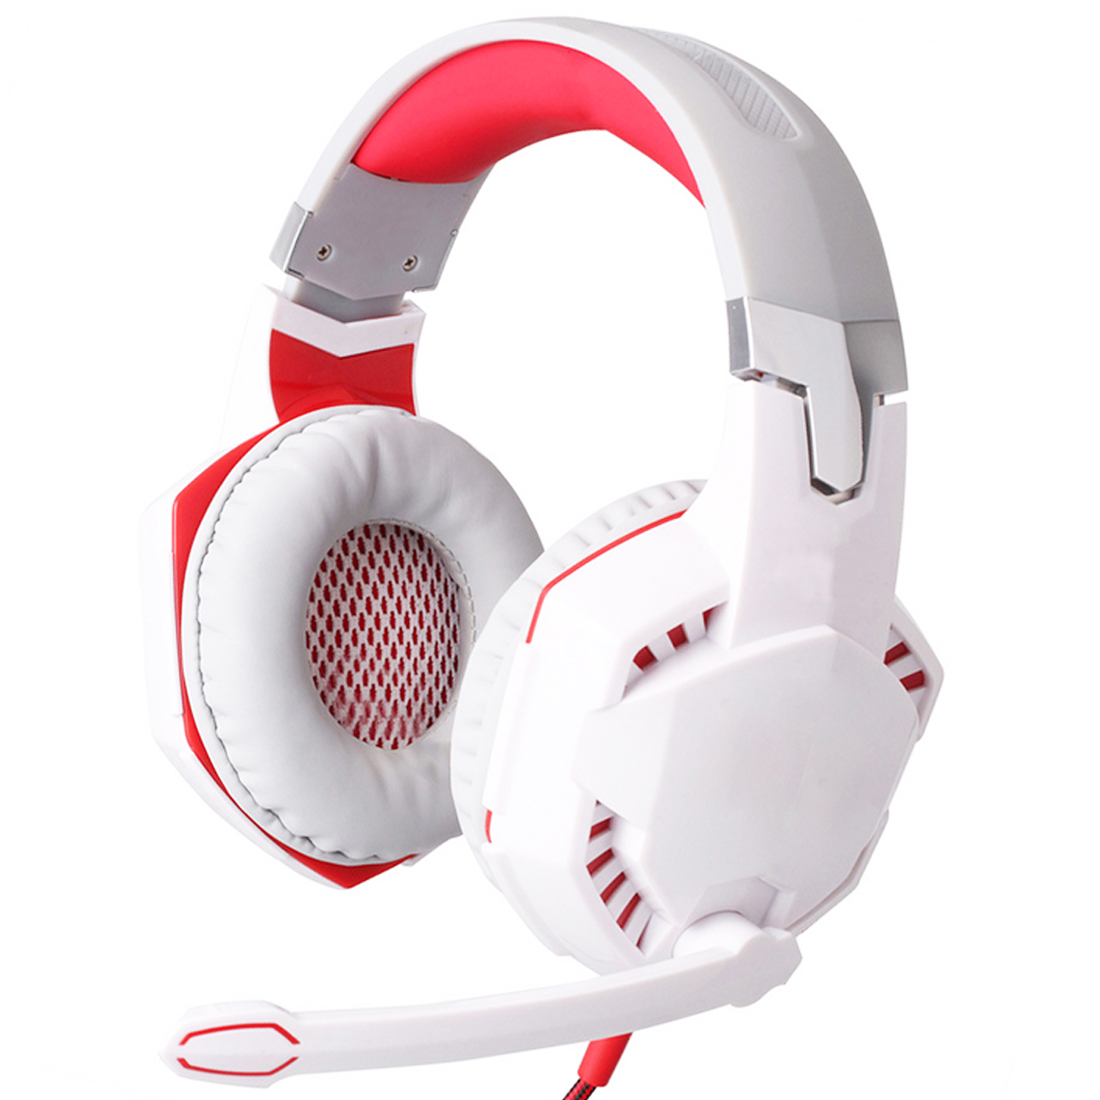 Marsnaska Top Wire Gaming Headphone Gaming Headset Over Ear casque gamer Game Headphone With Microphone Mic LED light for PC philips shg7210 professional game headphones with microphone wire control headphone for xiaomi mp3 official verification